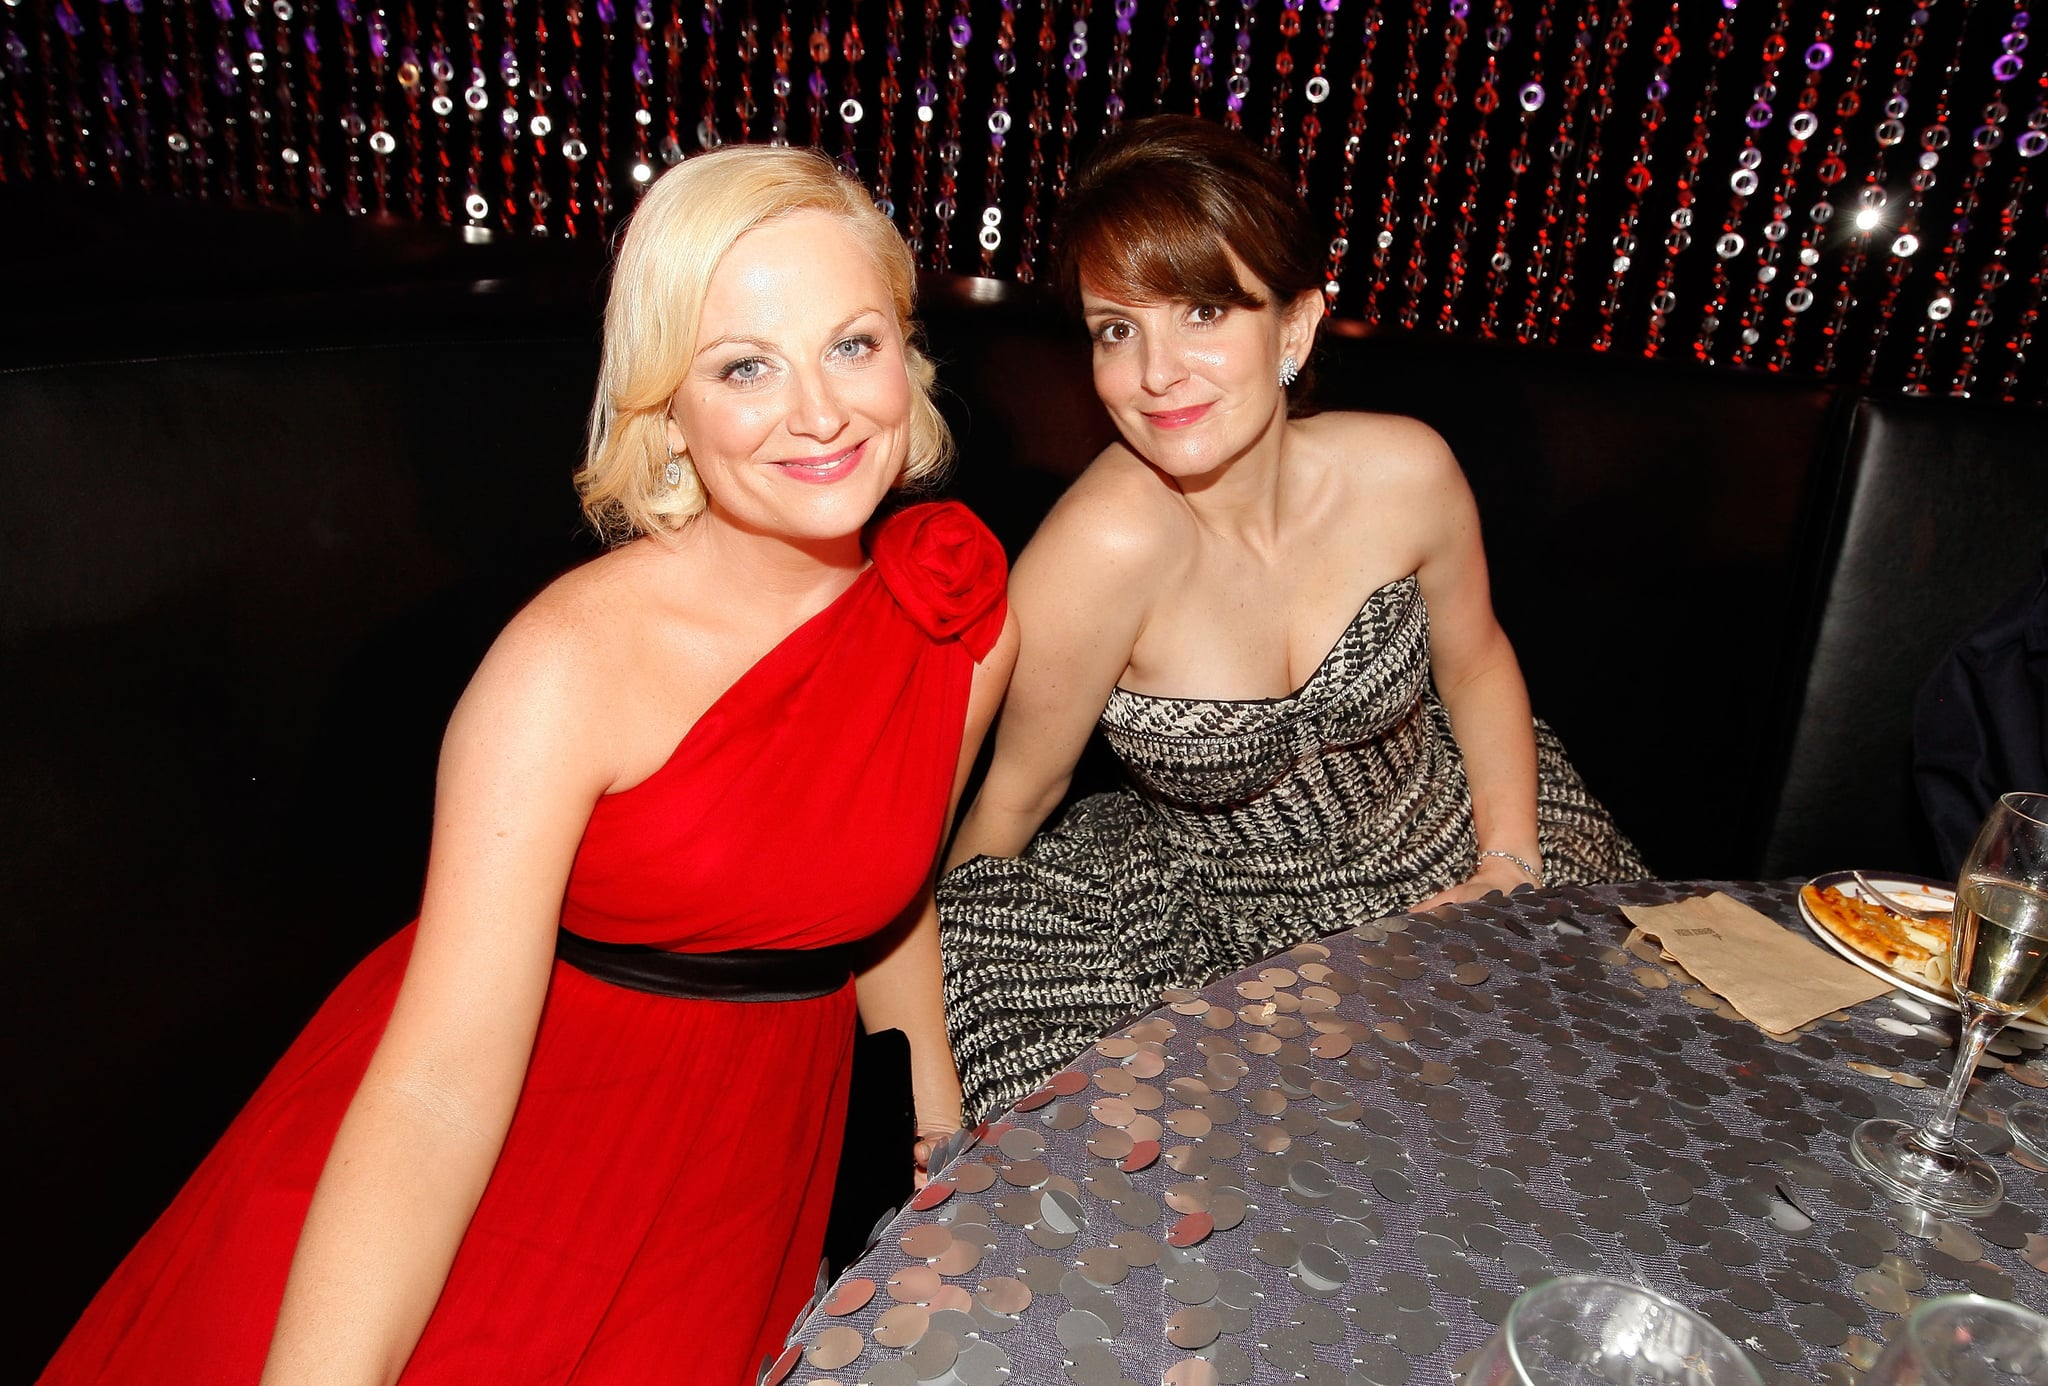 Amy and Tina sat together at a Golden Globes afterparty in 2010.